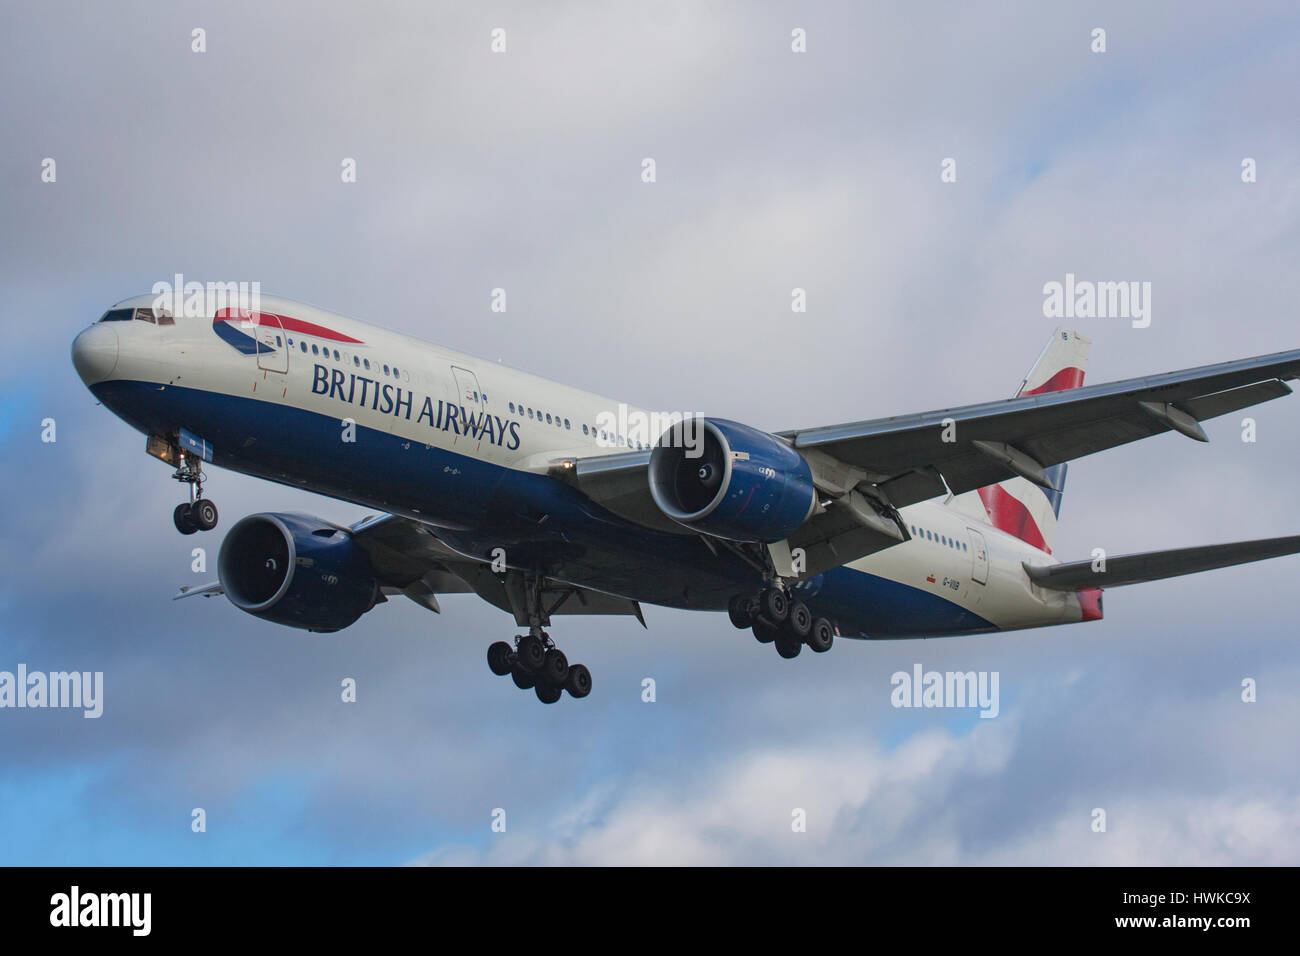 British Airways Boeing 777-236/ER landing at London Heathrow Airport, UK Stock Photo